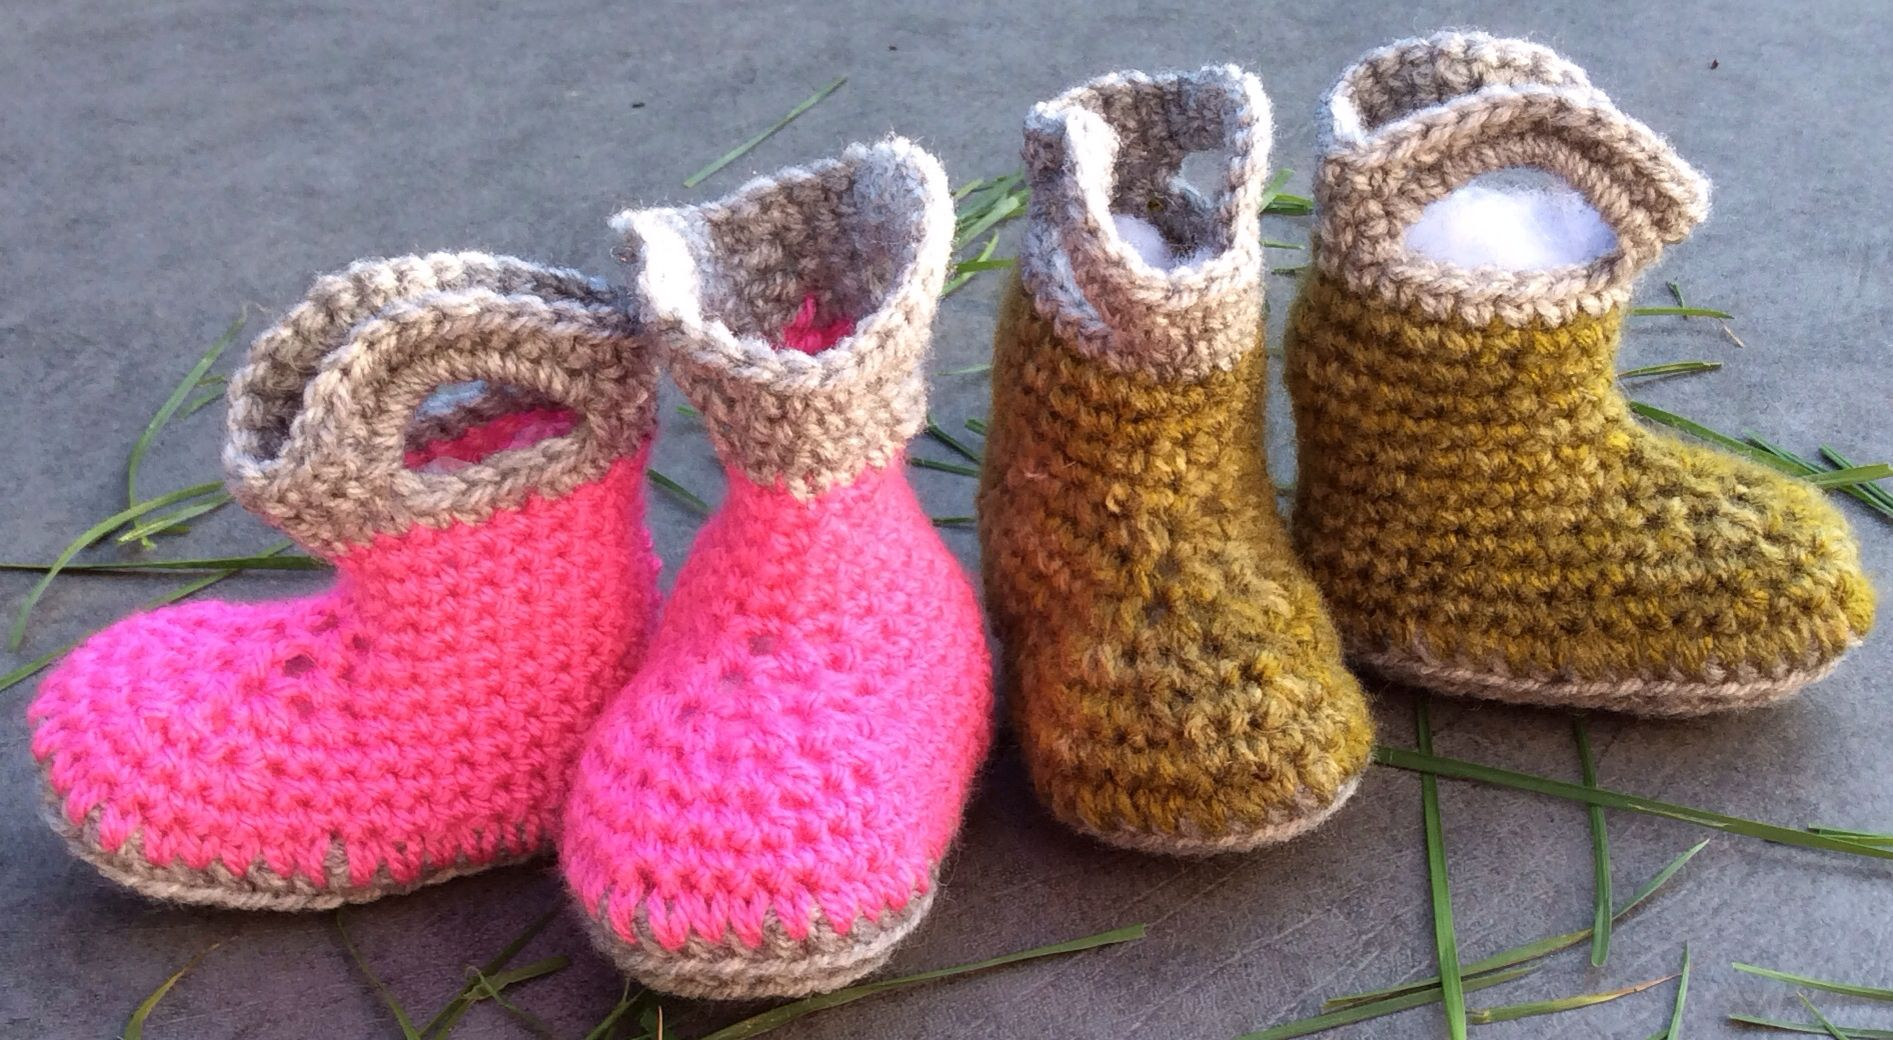 Crochet baby booties - Wellington boots (Inspired by repeatcrafterme ...